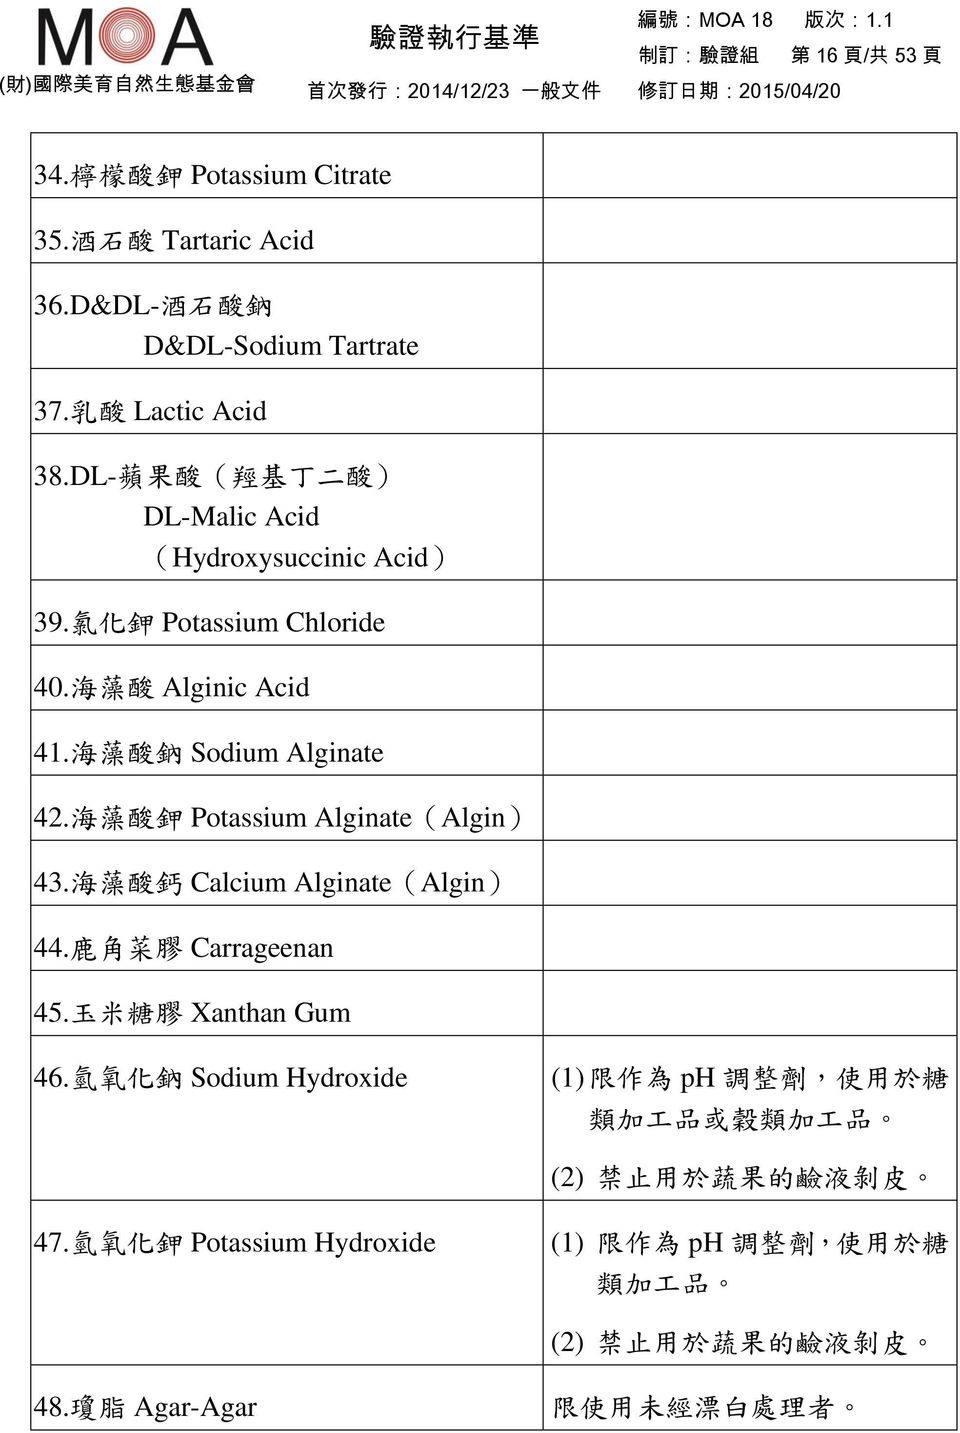 海 藻 酸 鉀 Potassium Alginate(Algin) 43. 海 藻 酸 鈣 Calcium Alginate(Algin) 44. 鹿 角 菜 膠 Carrageenan 45. 玉 米 糖 膠 Xanthan Gum 46.